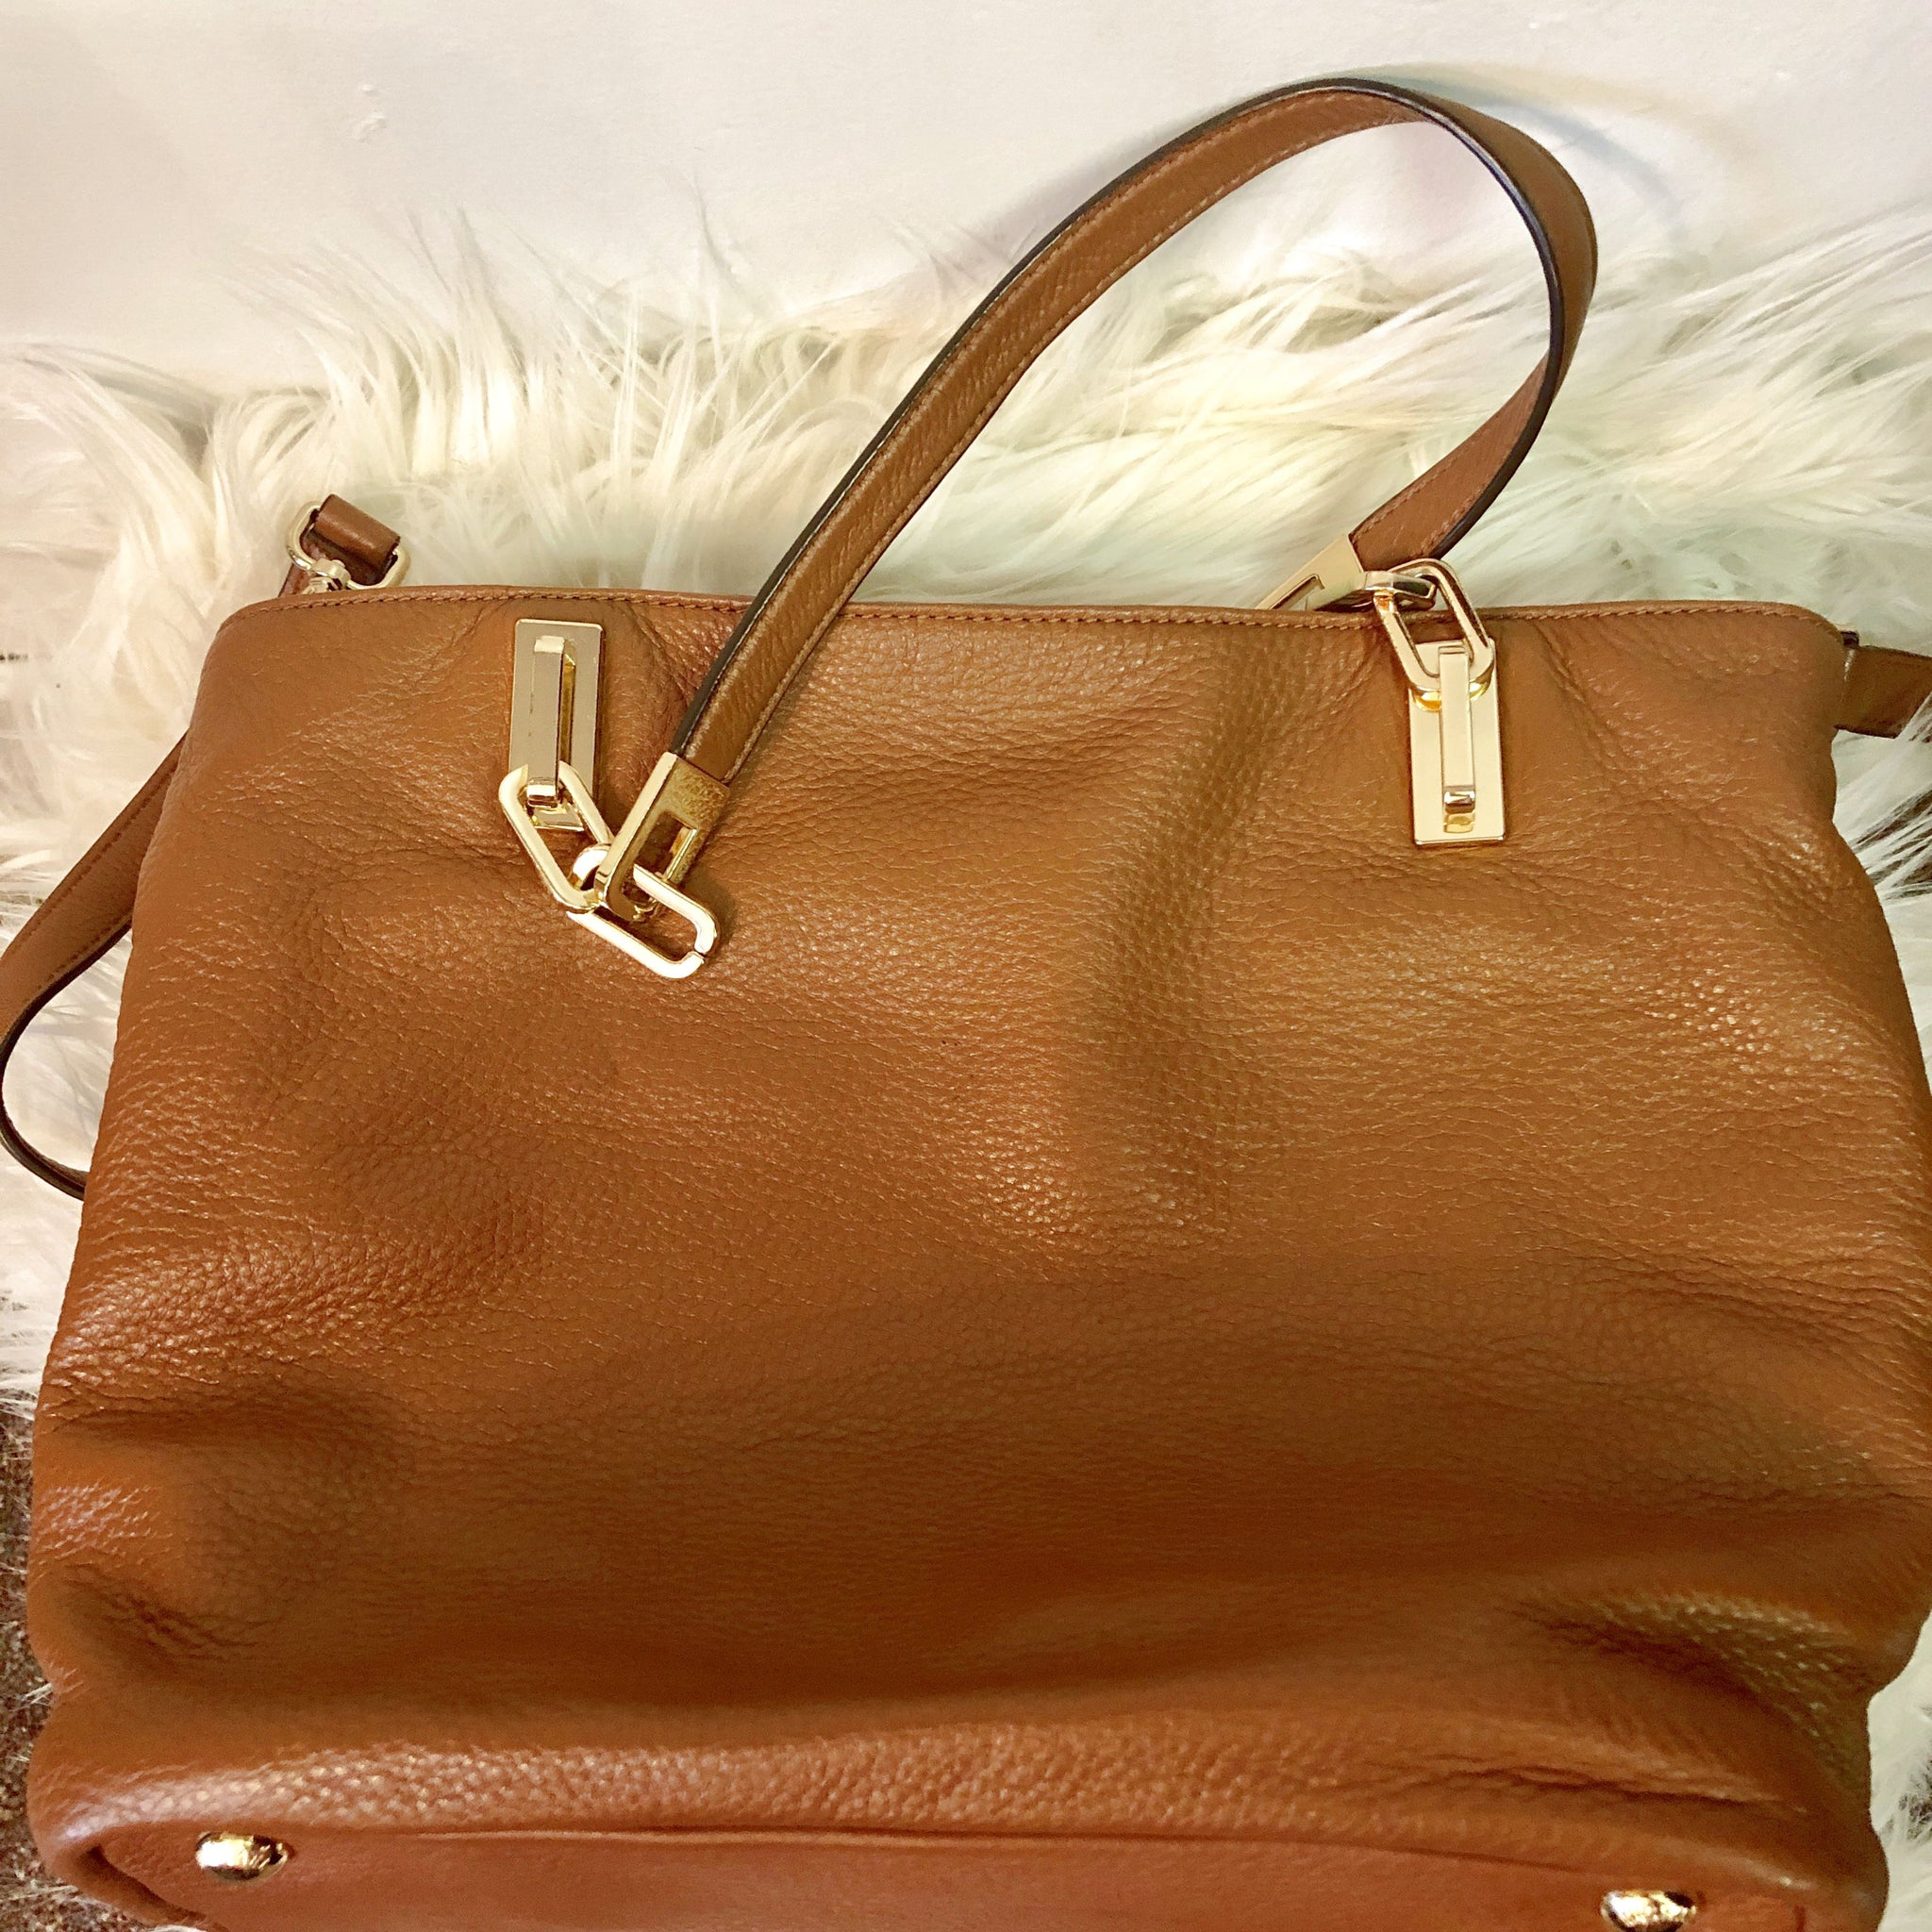 Michael Kors Brown Purse, Shoulder Bag